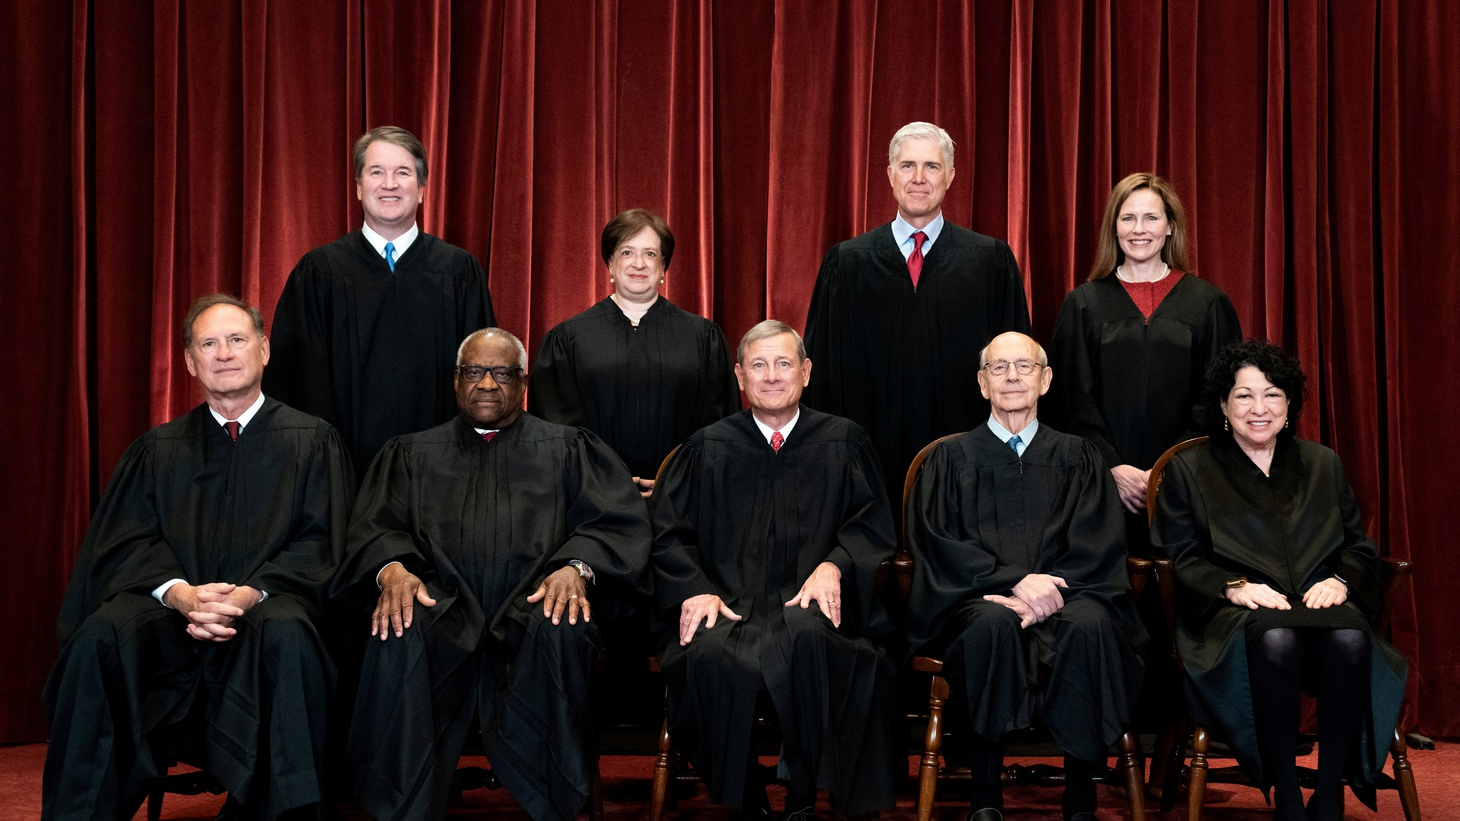 Justices Brett Kavanaugh, Elena Kagan, Neil Gorsuch, Amy Coney Barrett, Samuel Alito, Clarence Thomas, John Roberts, Stephen Breyer and Sonia Sotomayor pose for a group photo at the Supreme Court in Washington, U.S., April 23, 2021.